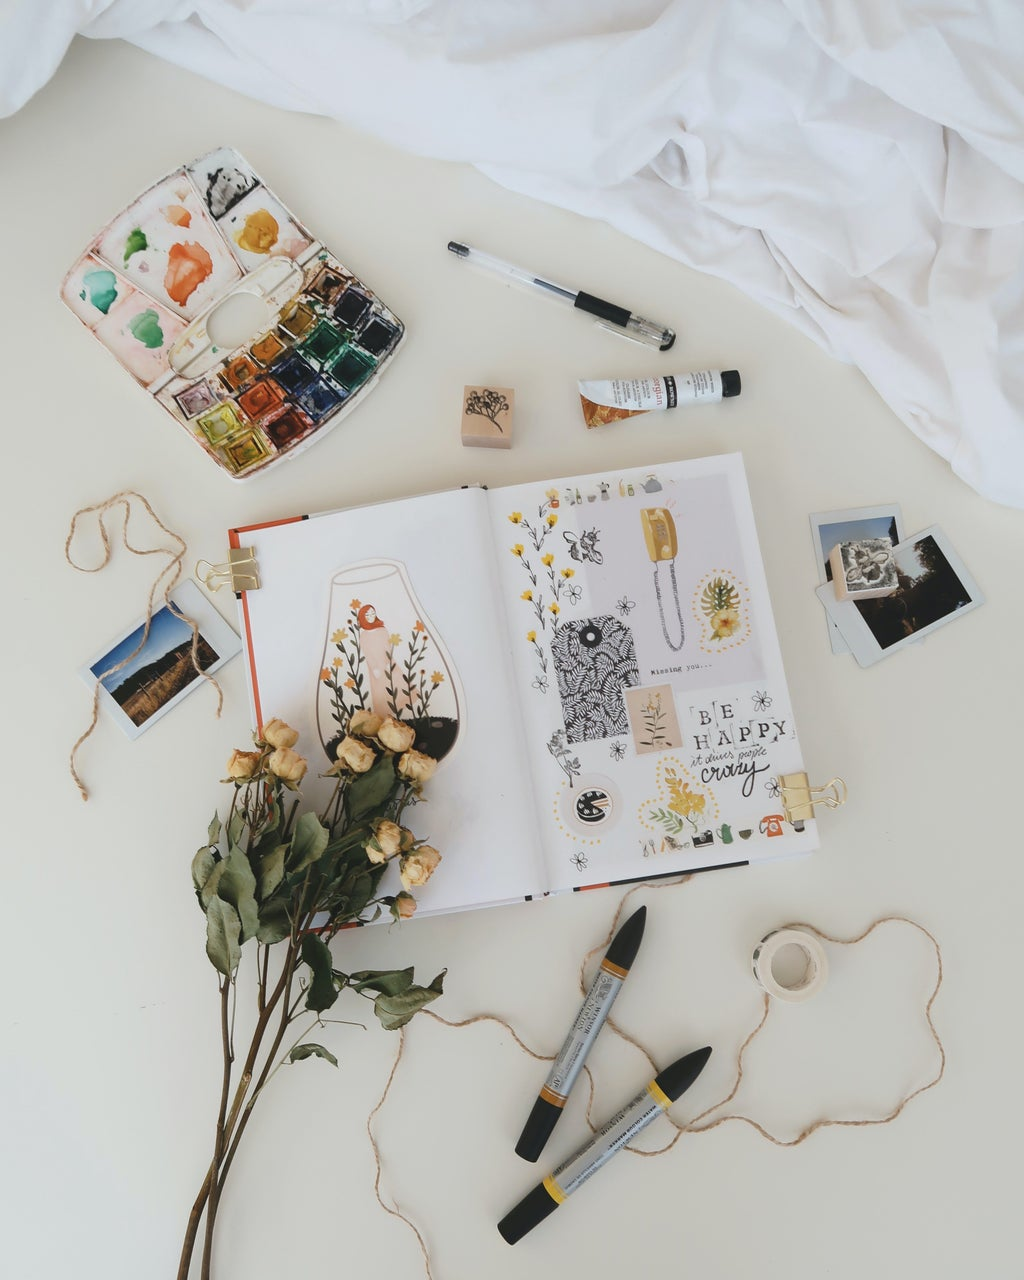 Flatlay photography of stuffs on white surface photo.